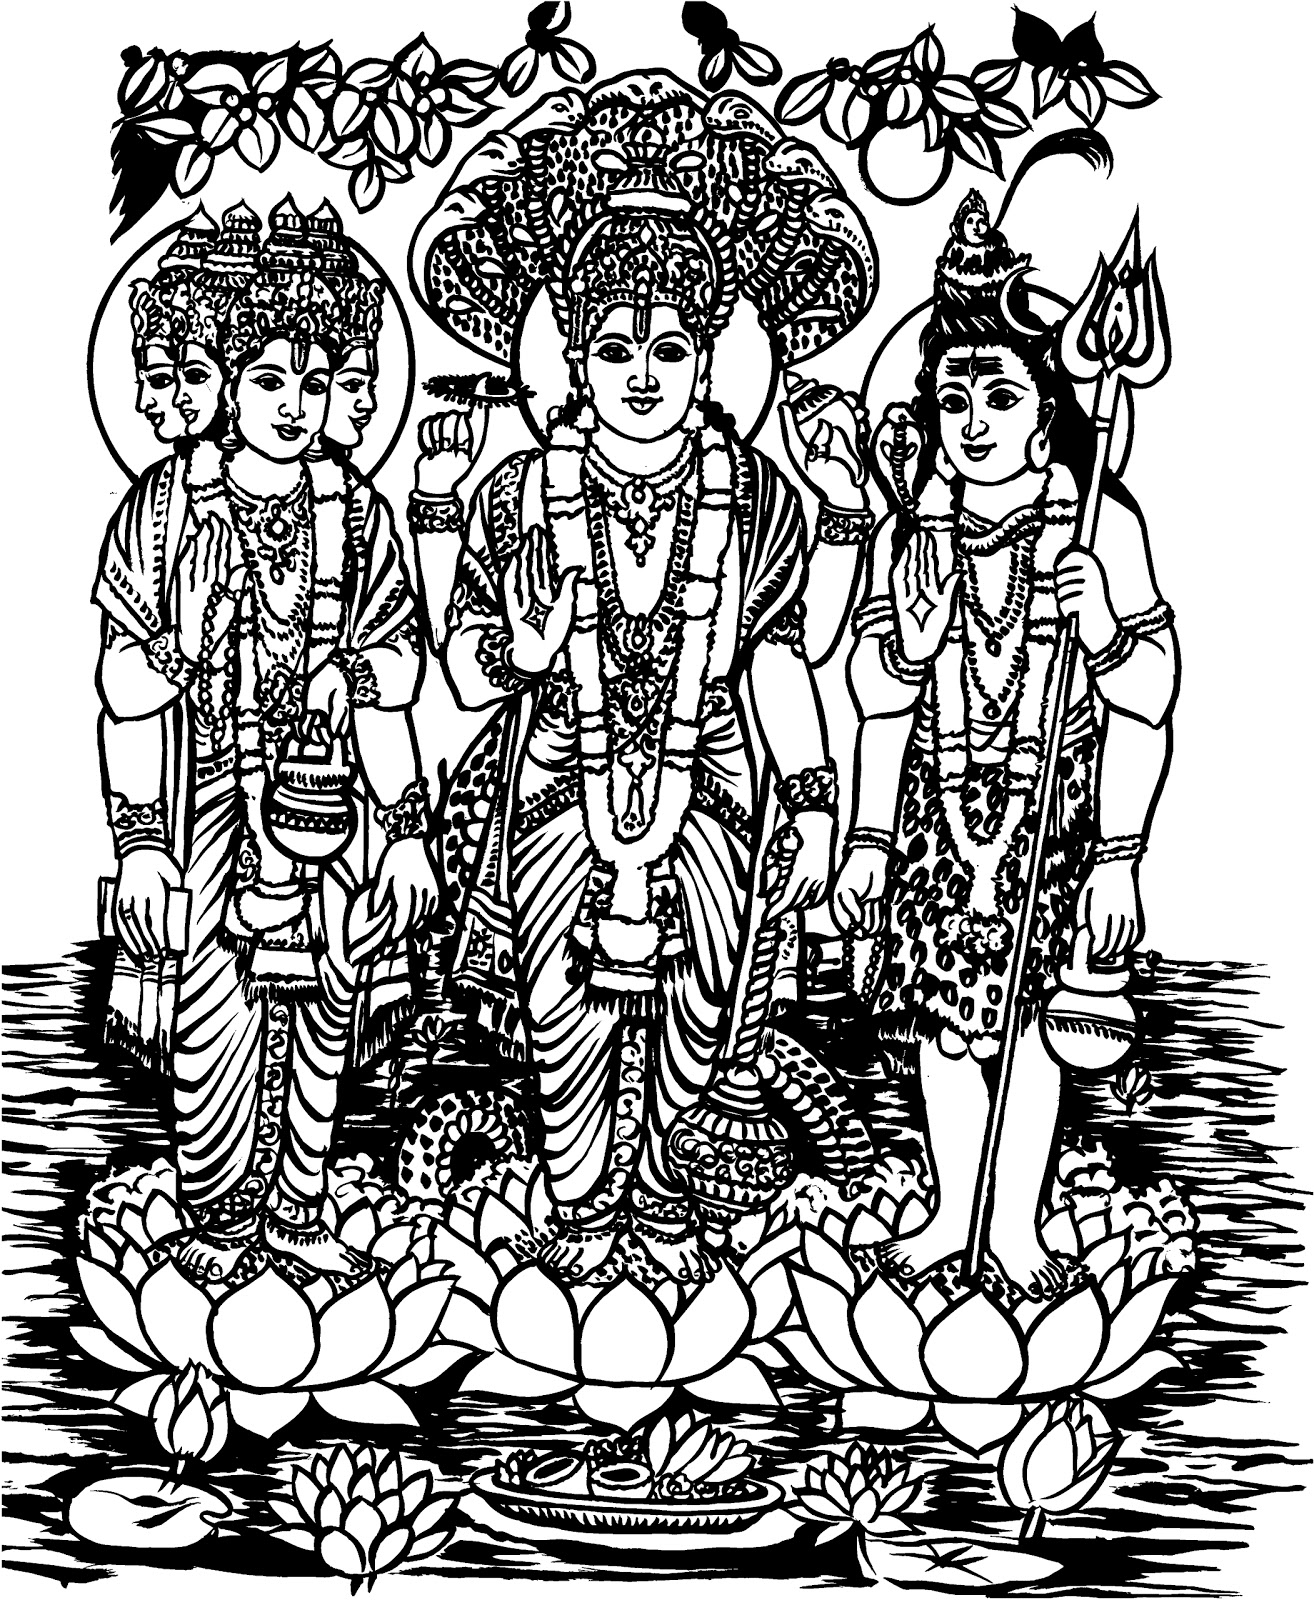 ALL-IN-ONE WALLPAPERS: Pencil Drawings Hindu Gods Wallpapers